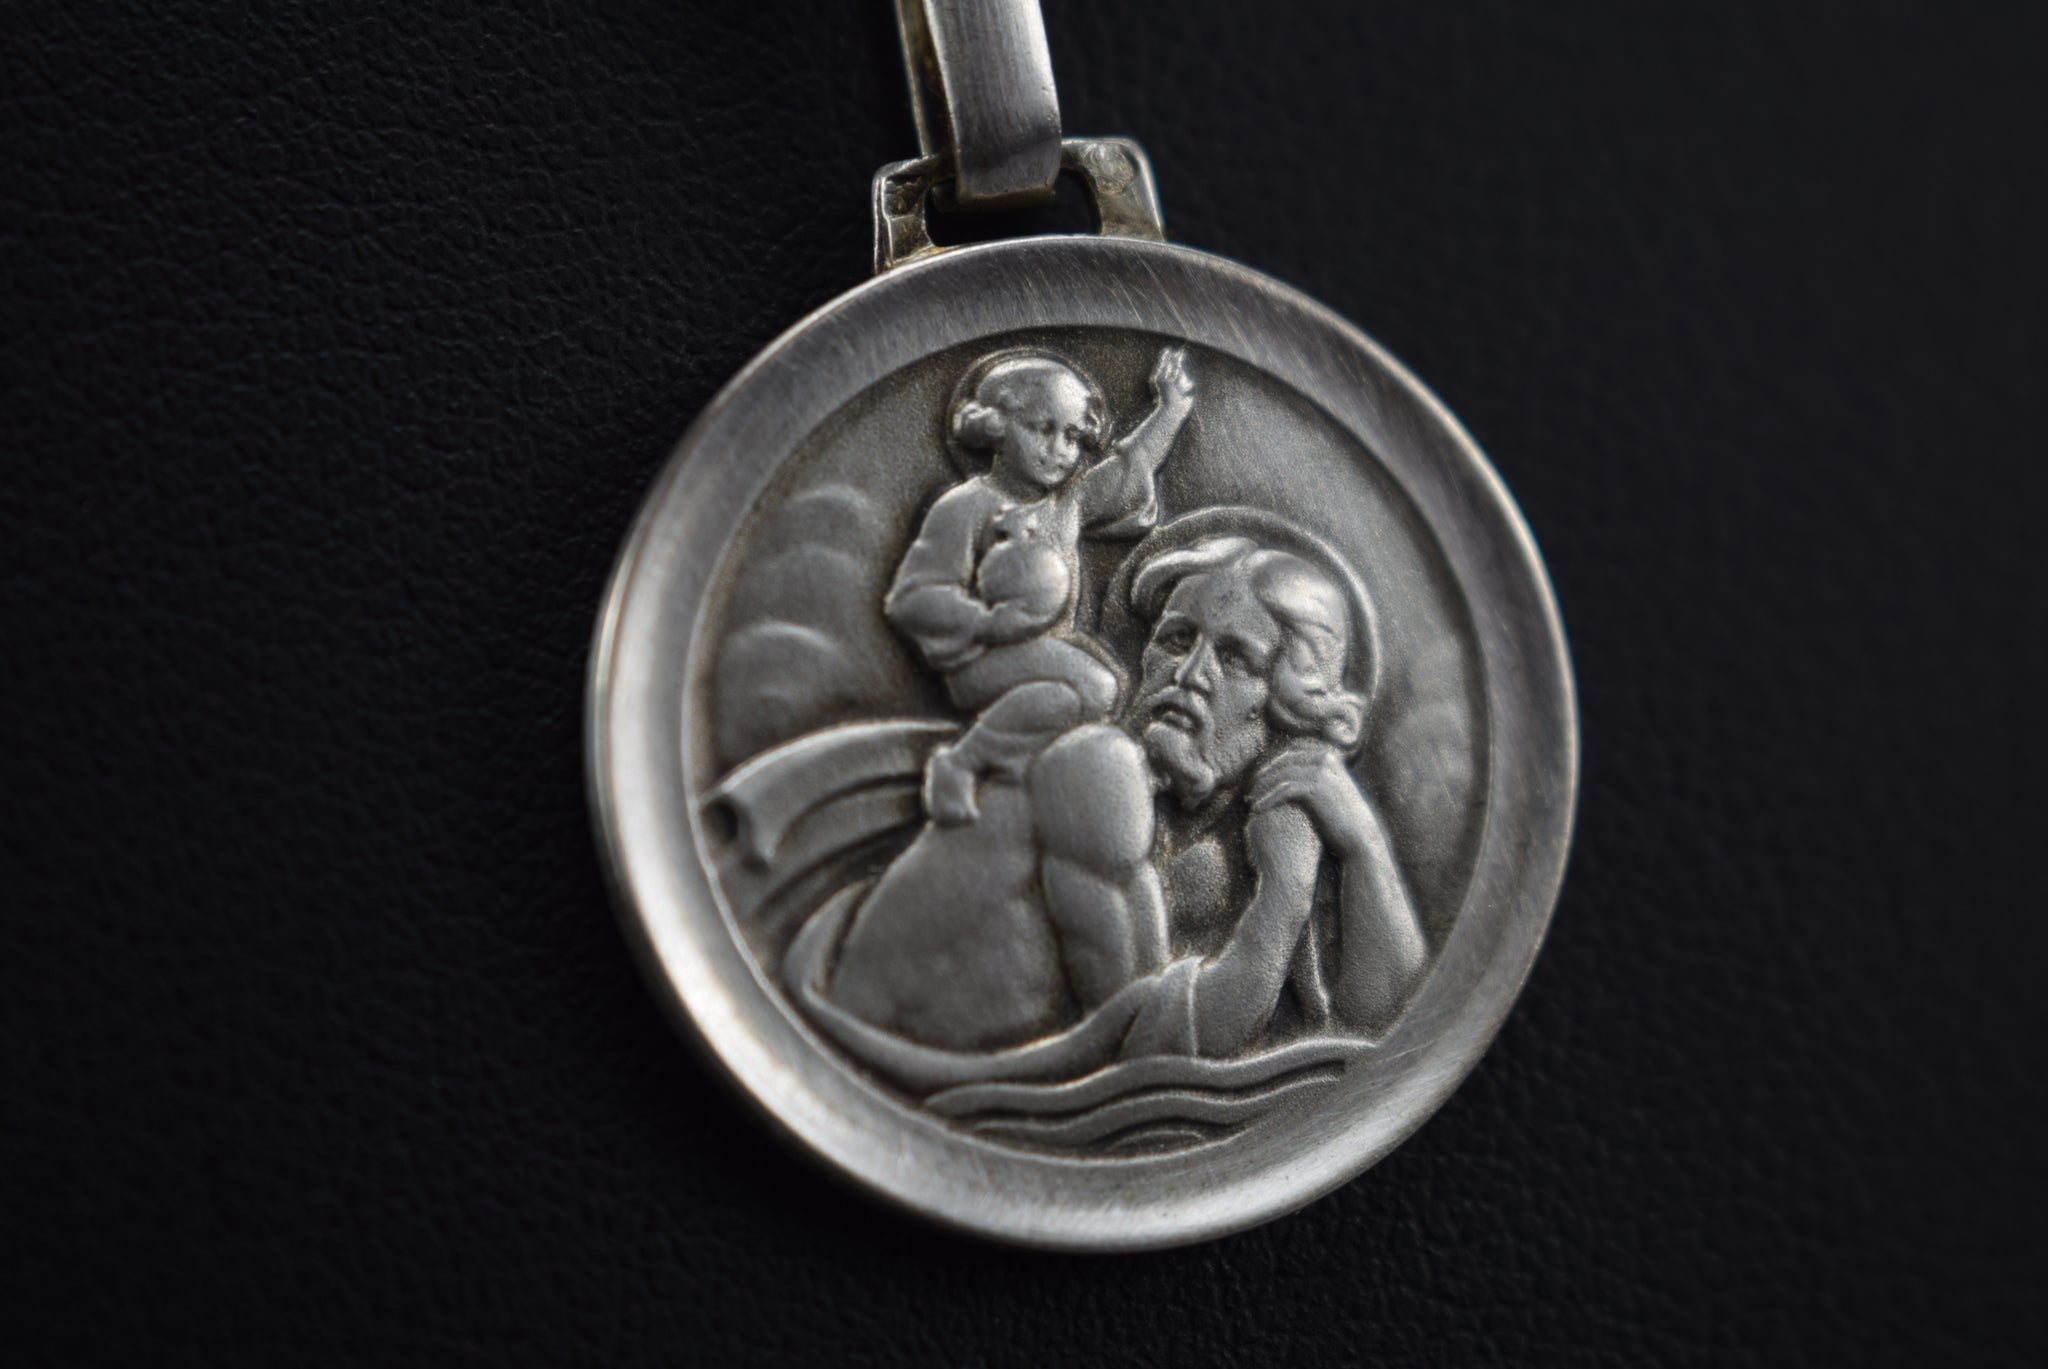 Saint Christopher Sterling Silver Medal Pendant Charm Necklace with 925 Silver Chain